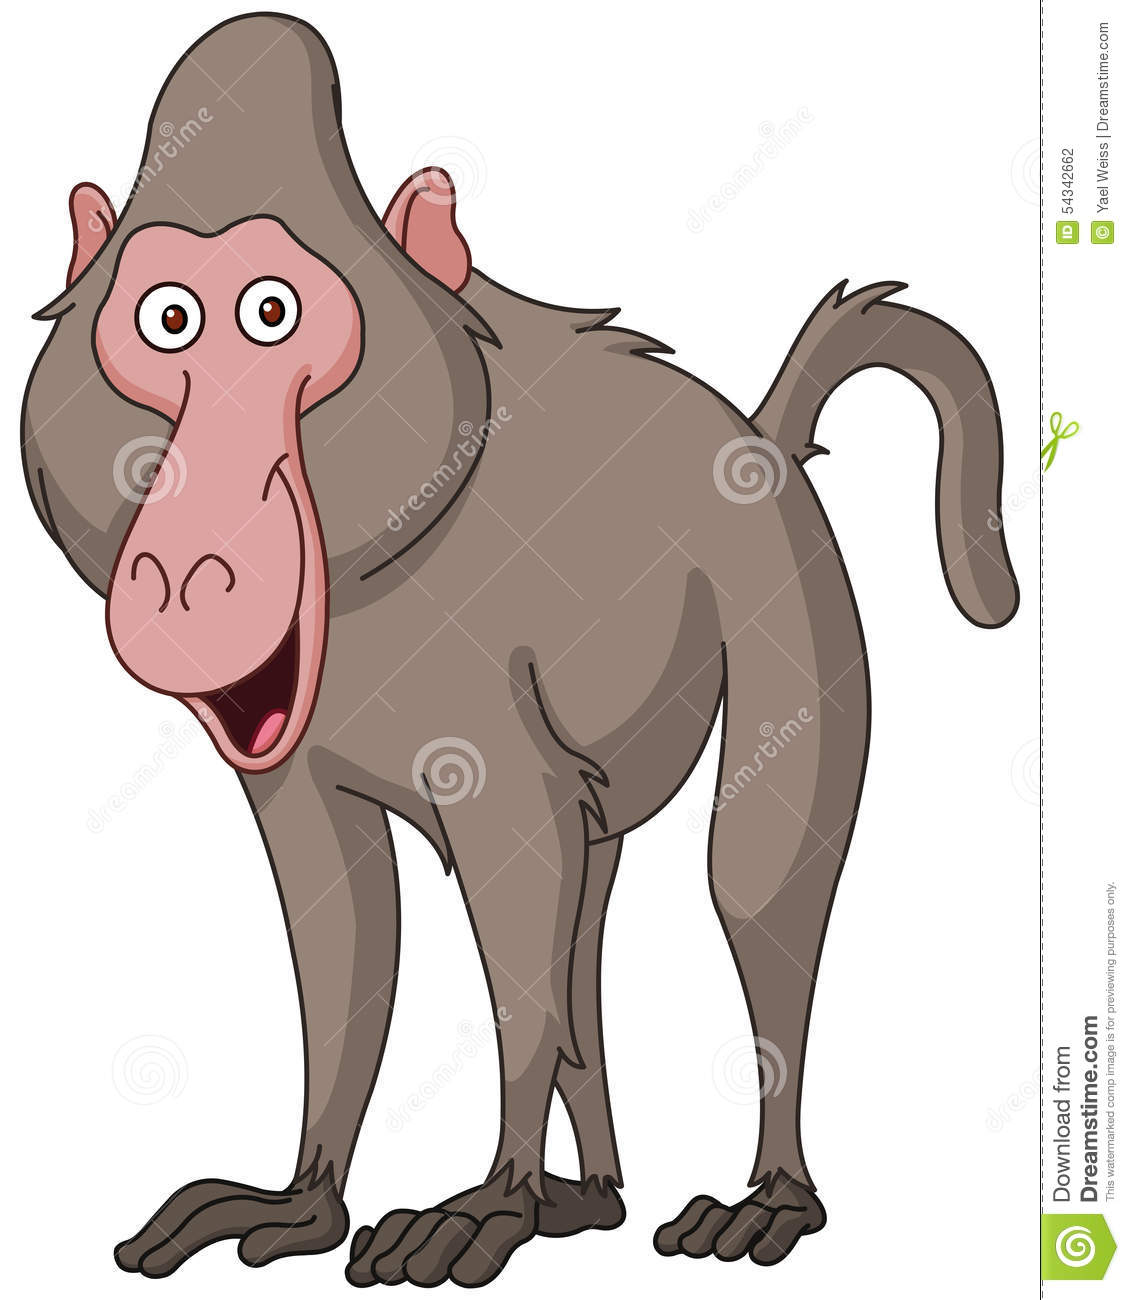 Baboon clipart sacred  Clipart Collection Synkee clipart